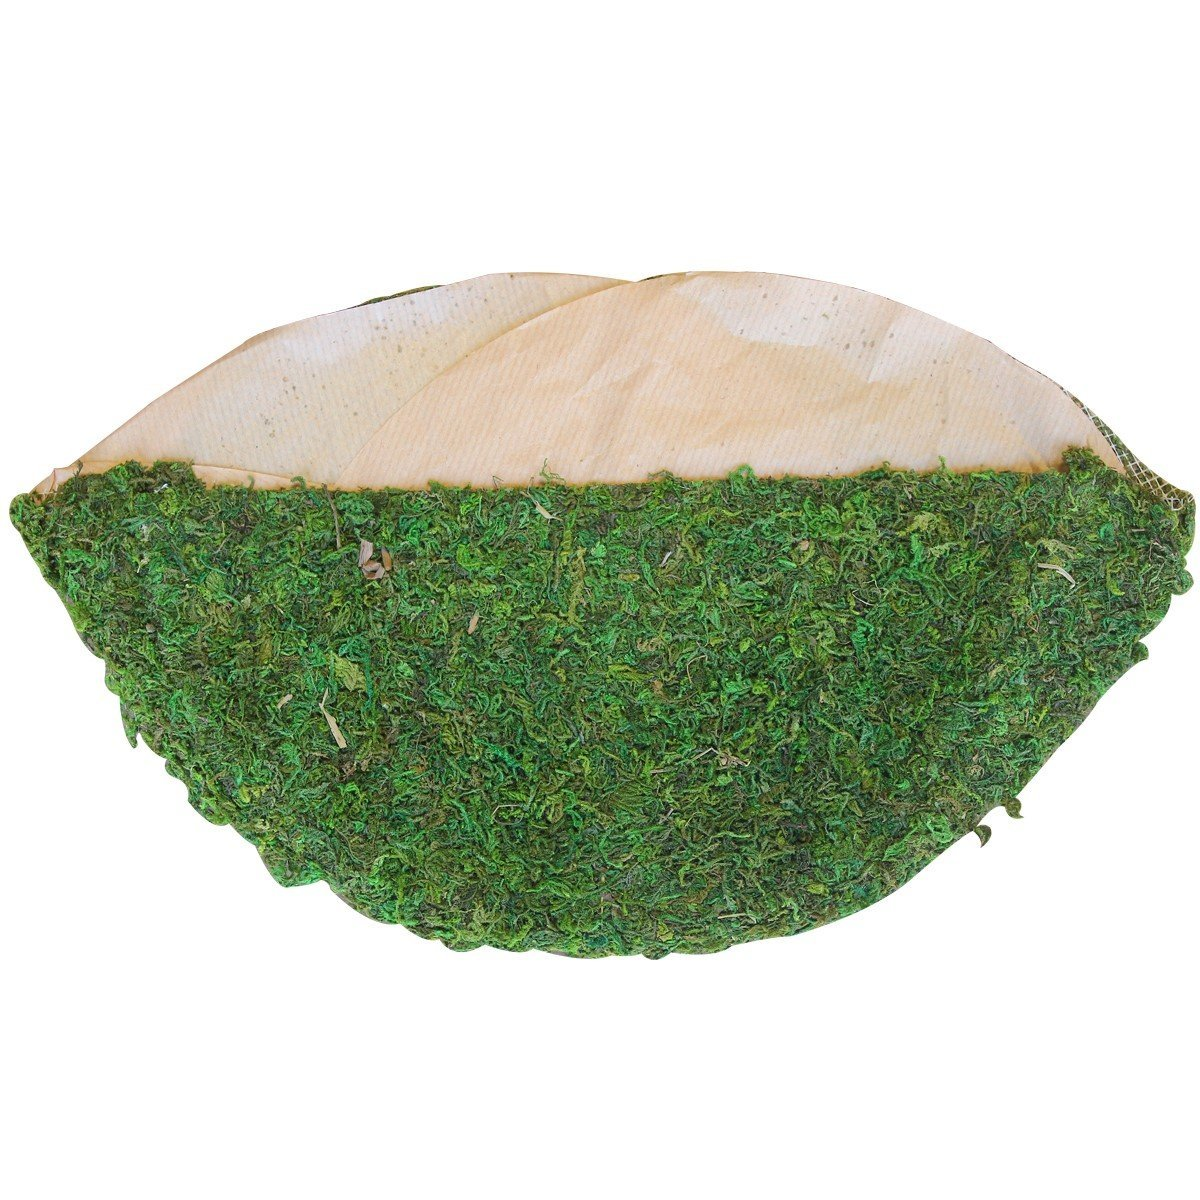 Moss Liner Semicircle for Basket Filling Layer 10 in.